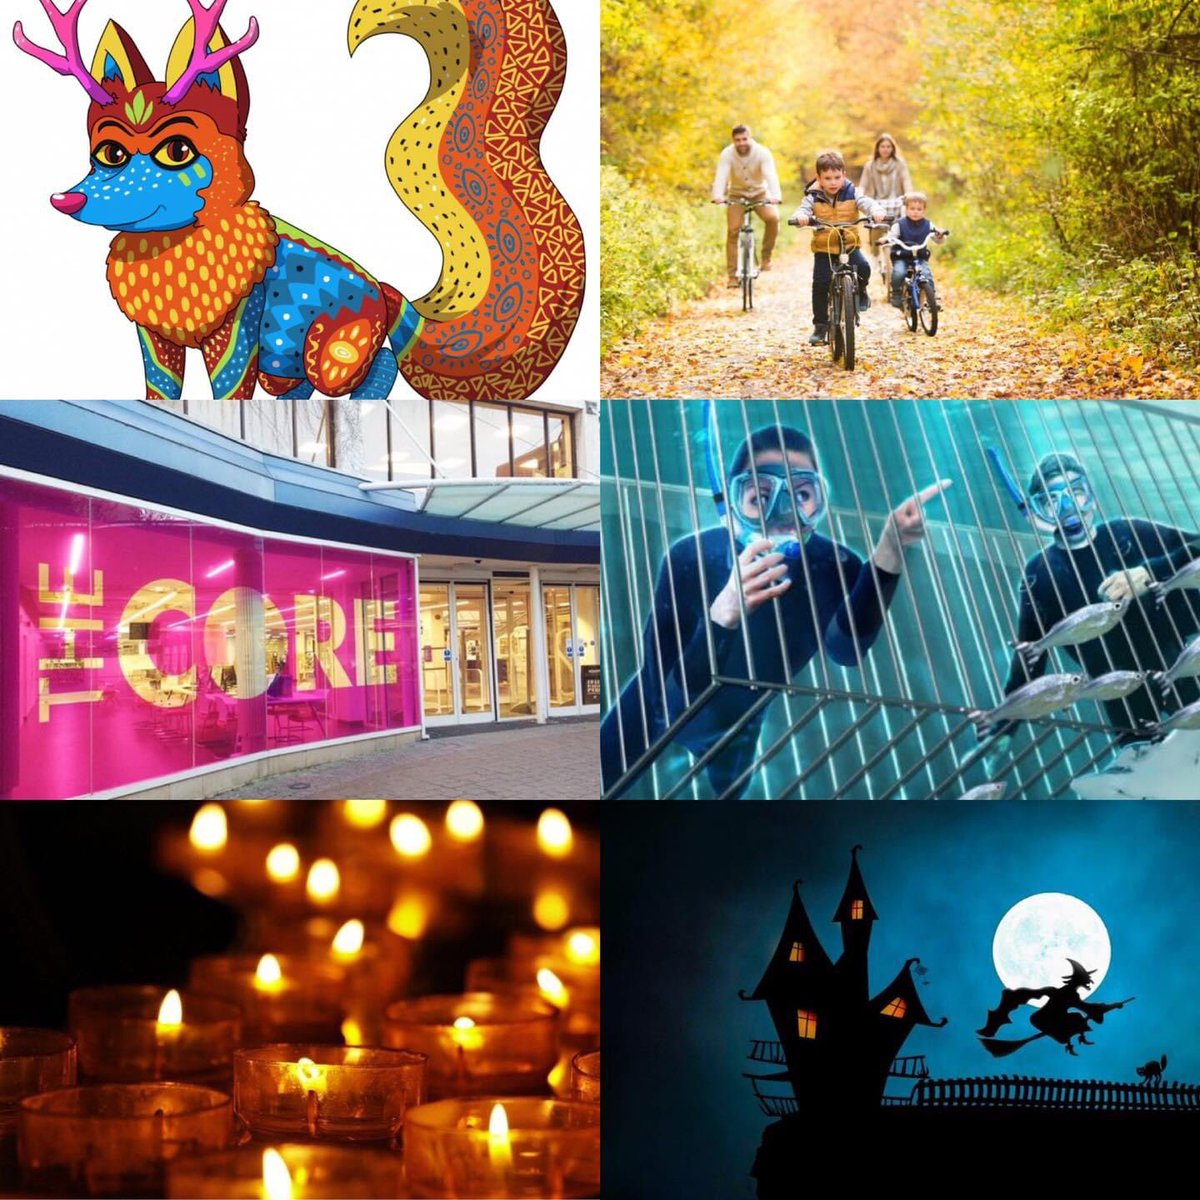 From pumpkin 🎃 picking to augmented reality trails, candle lit walks 🕯to spooky swamps 👻 and cursed castles! Check out our website for half term inspiration!   visitsolihull.co.uk  #halfterm #halloween #solihull #visitsolihull #thingstodo